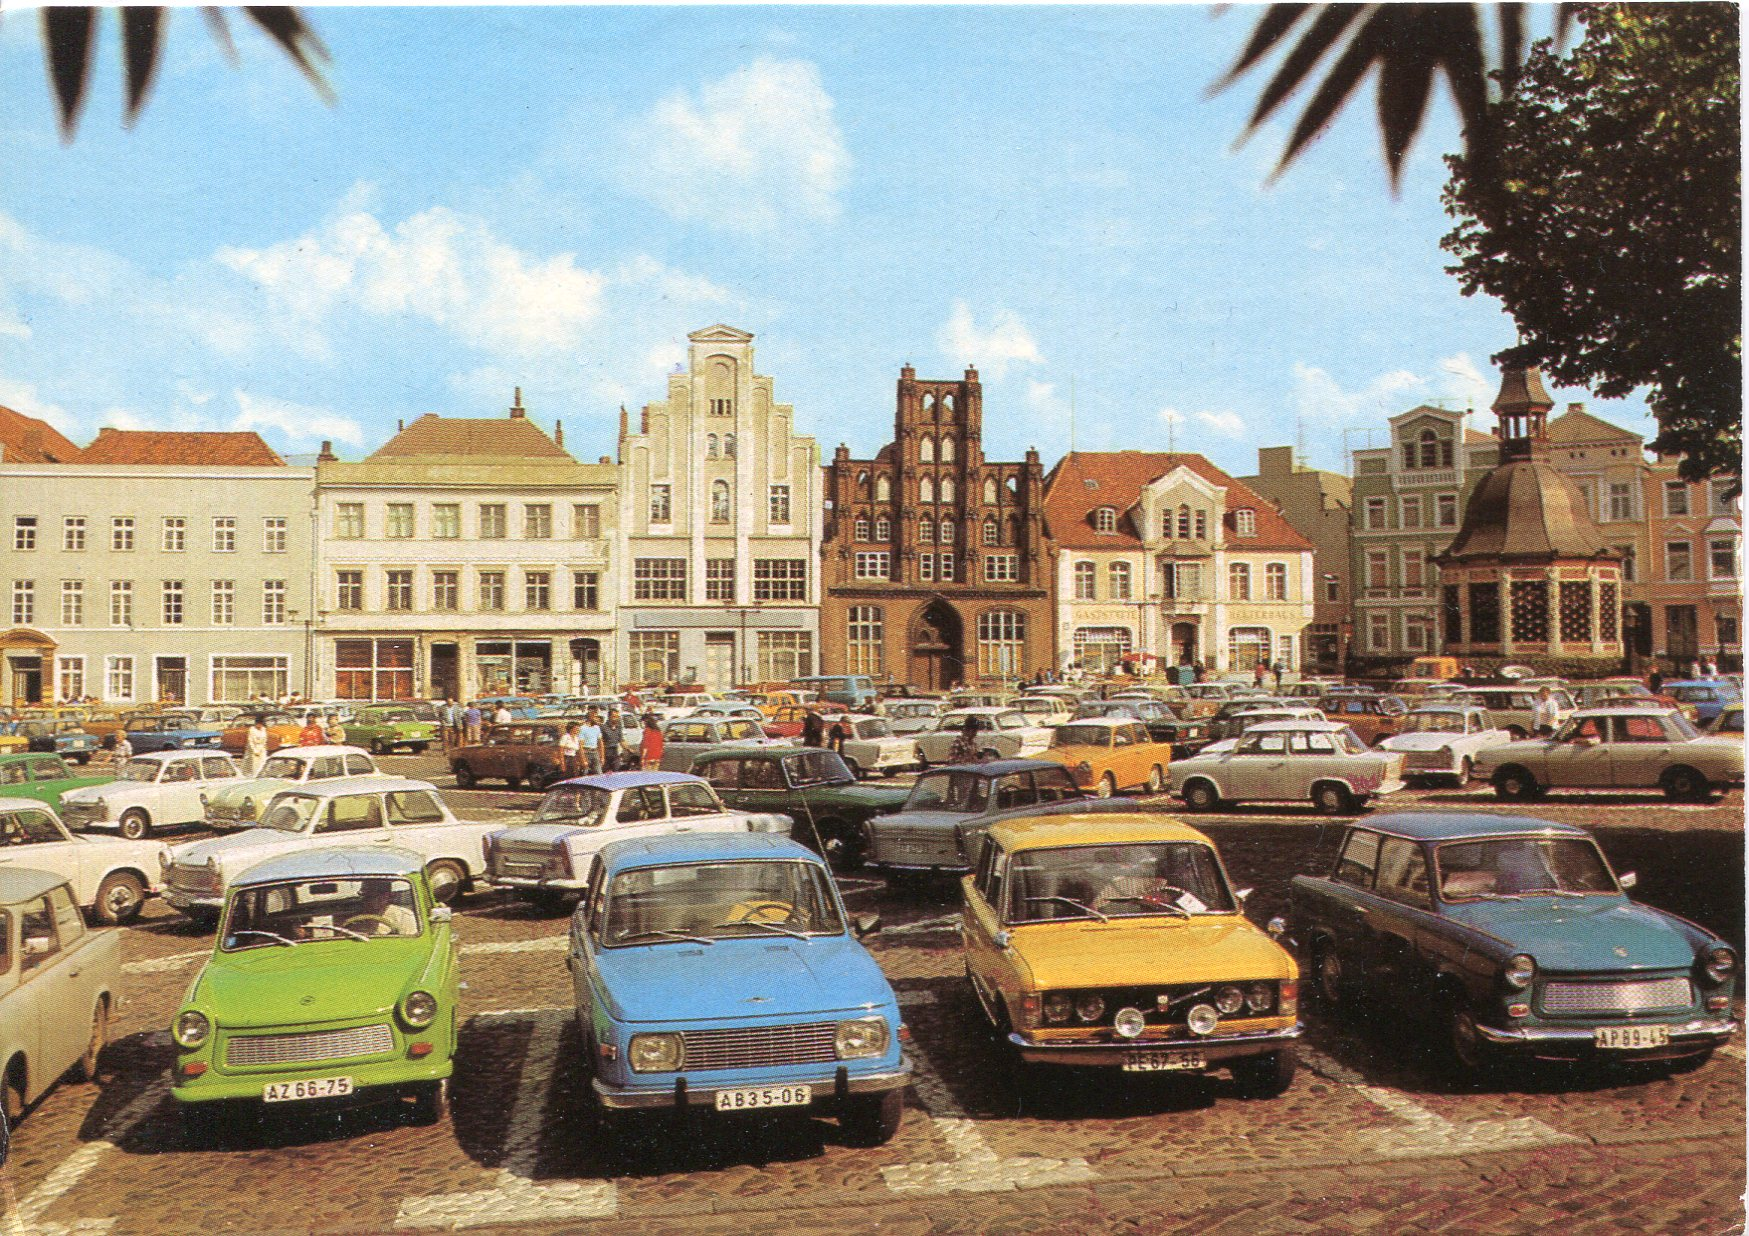 germany-wismar-gdr-cars.jpg